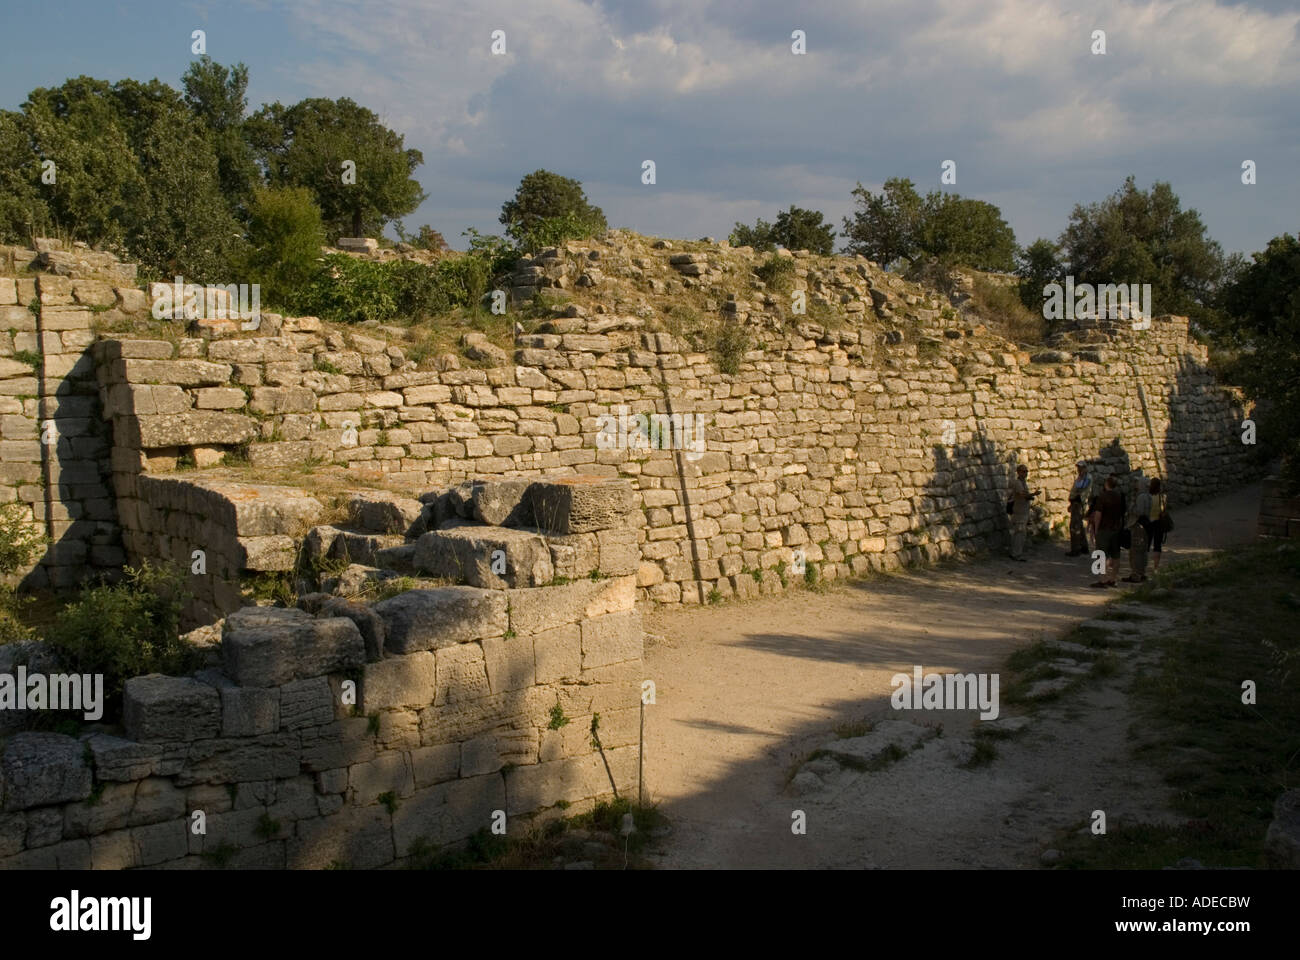 City wall of ancient city of Troy VI - Stock Image